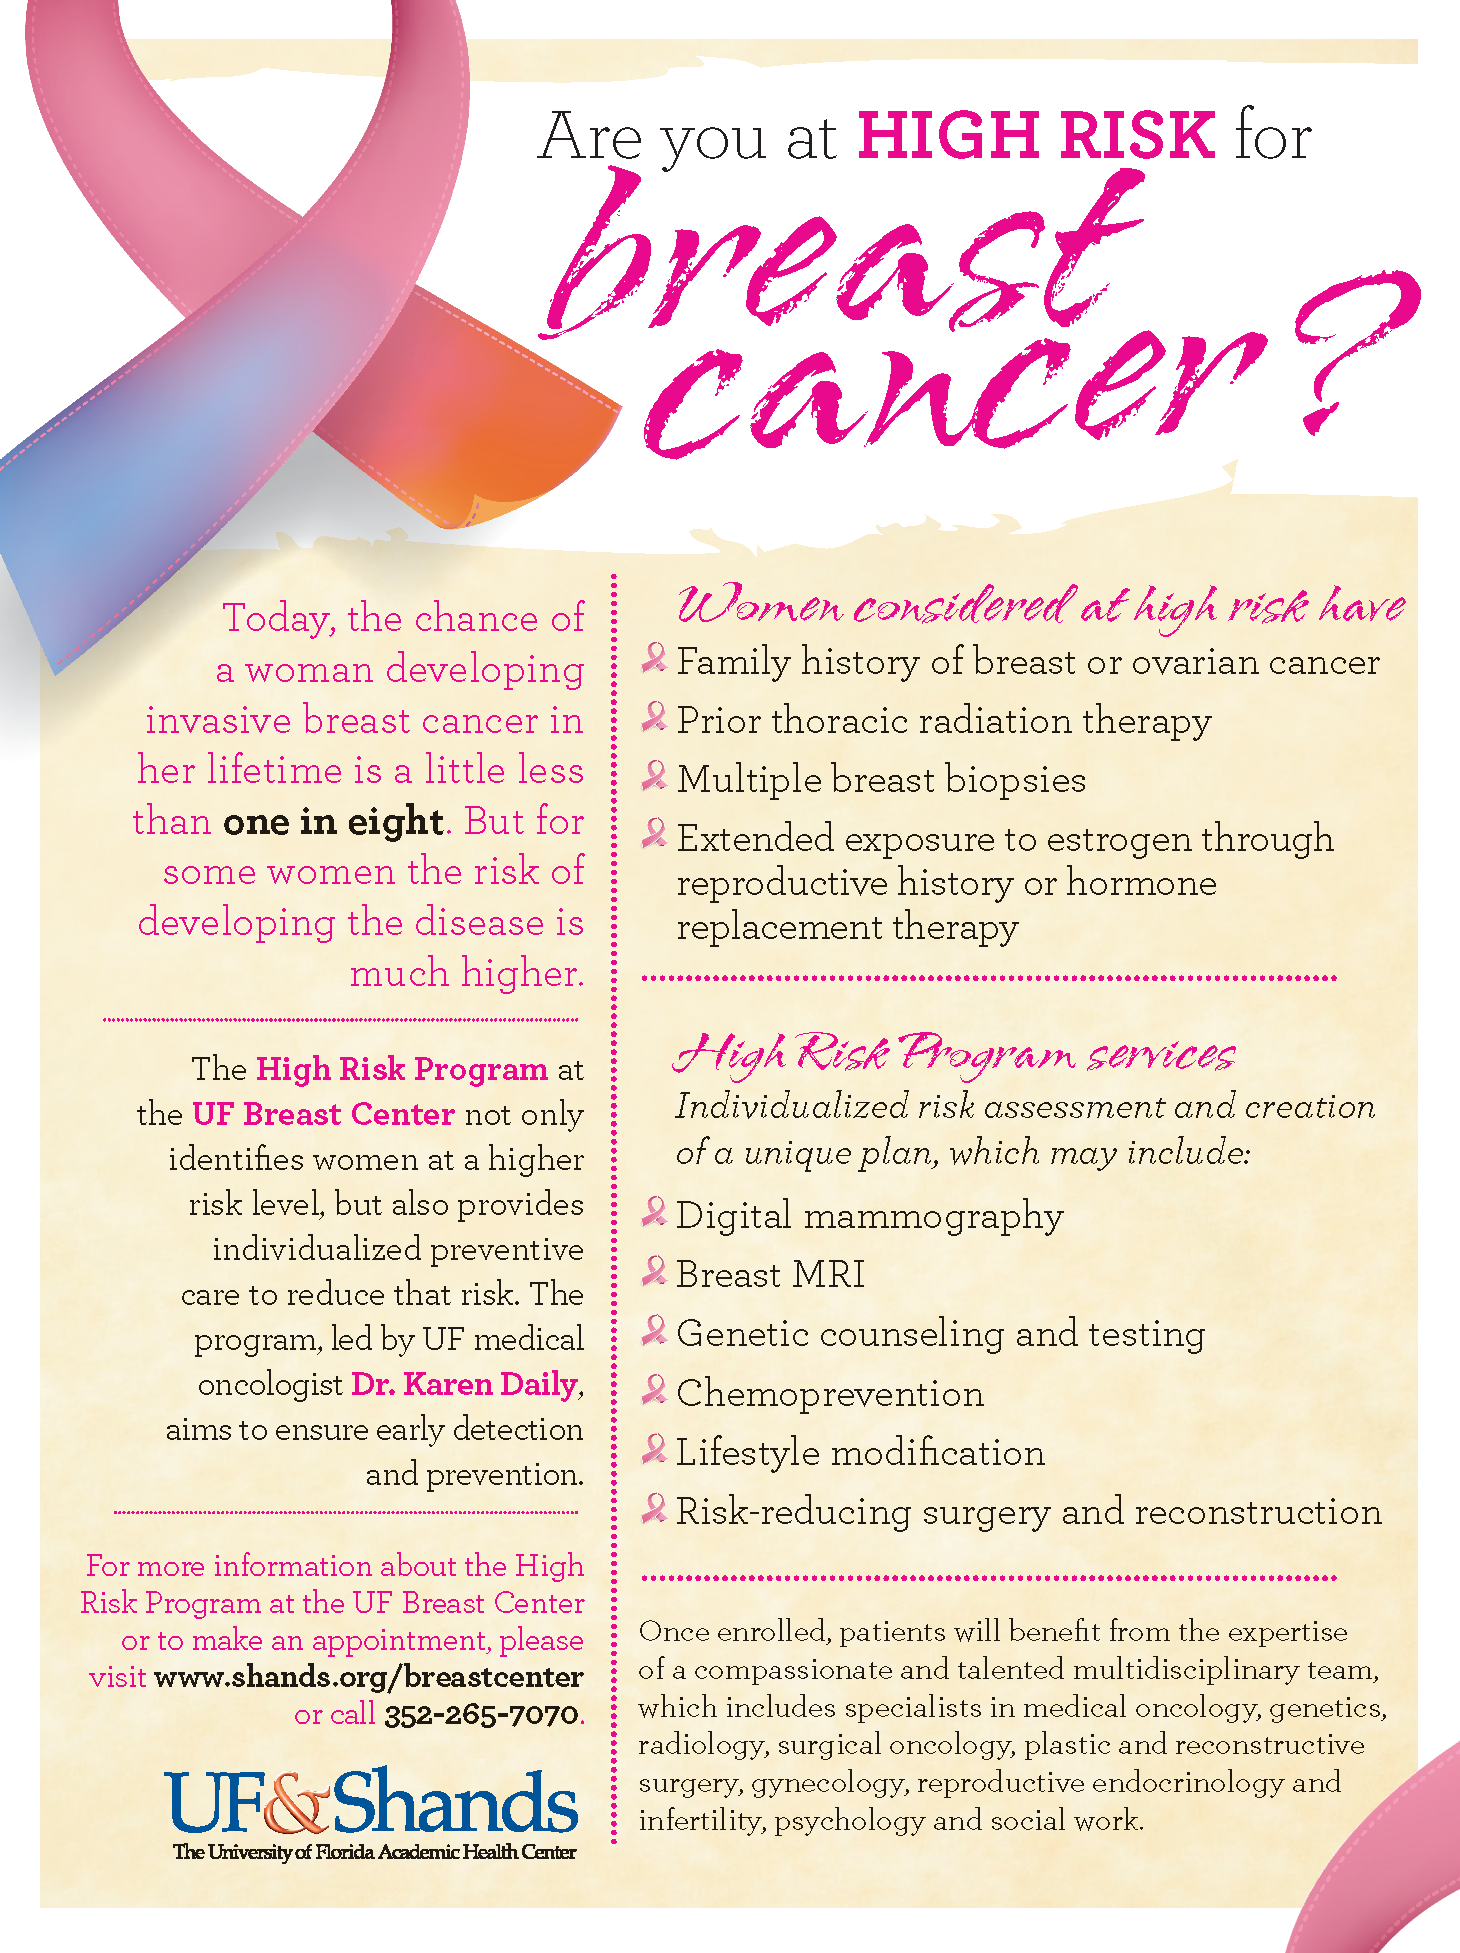 breast cancer brochure template free - breast cancer brochure abc infographic breast cancer